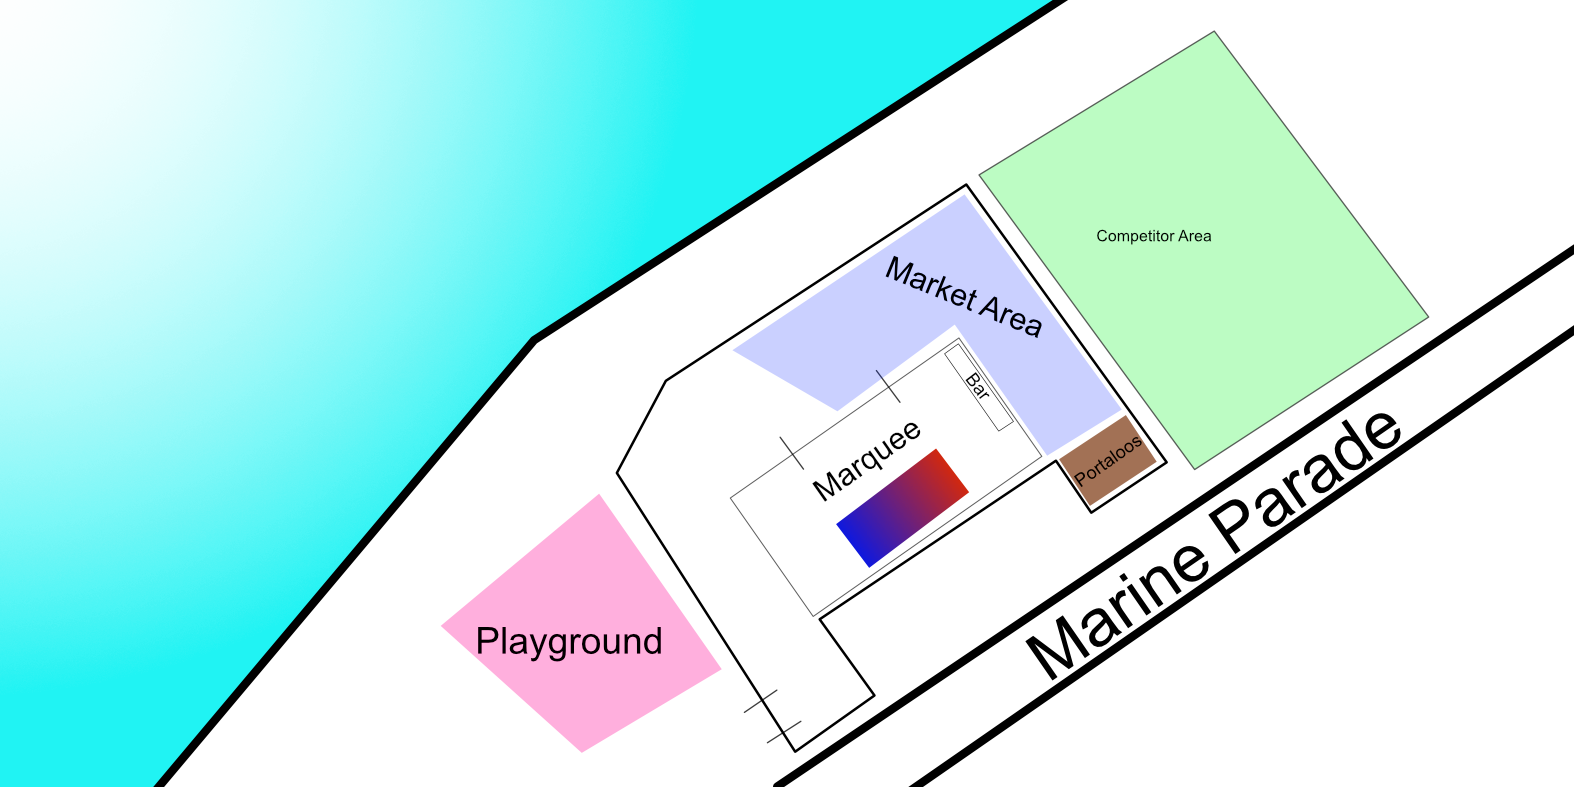 marque area.png